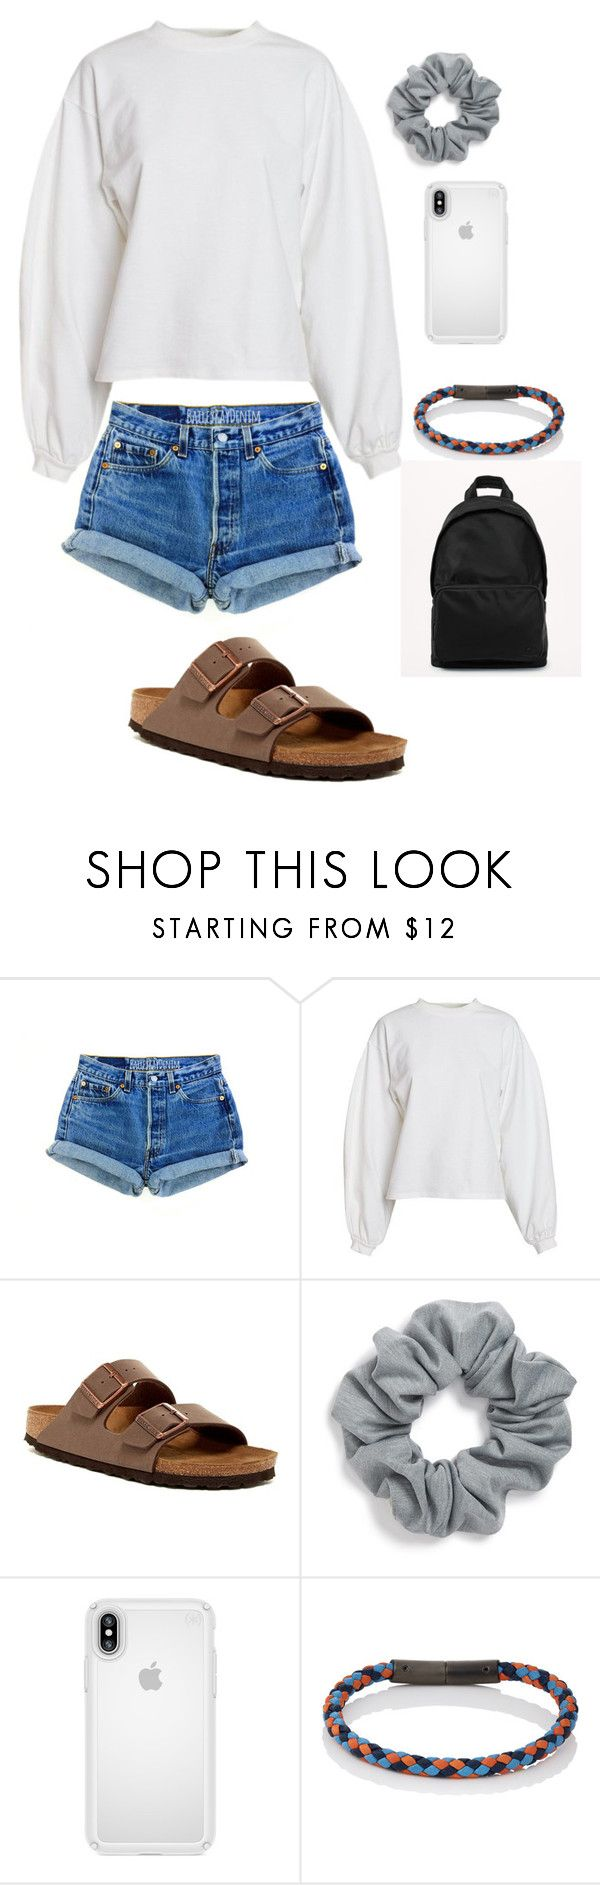 """summer"" by lagr on Polyvore featuring NLY Trend, Birkenstock, Natasha, Speck, Prada and lululemon"